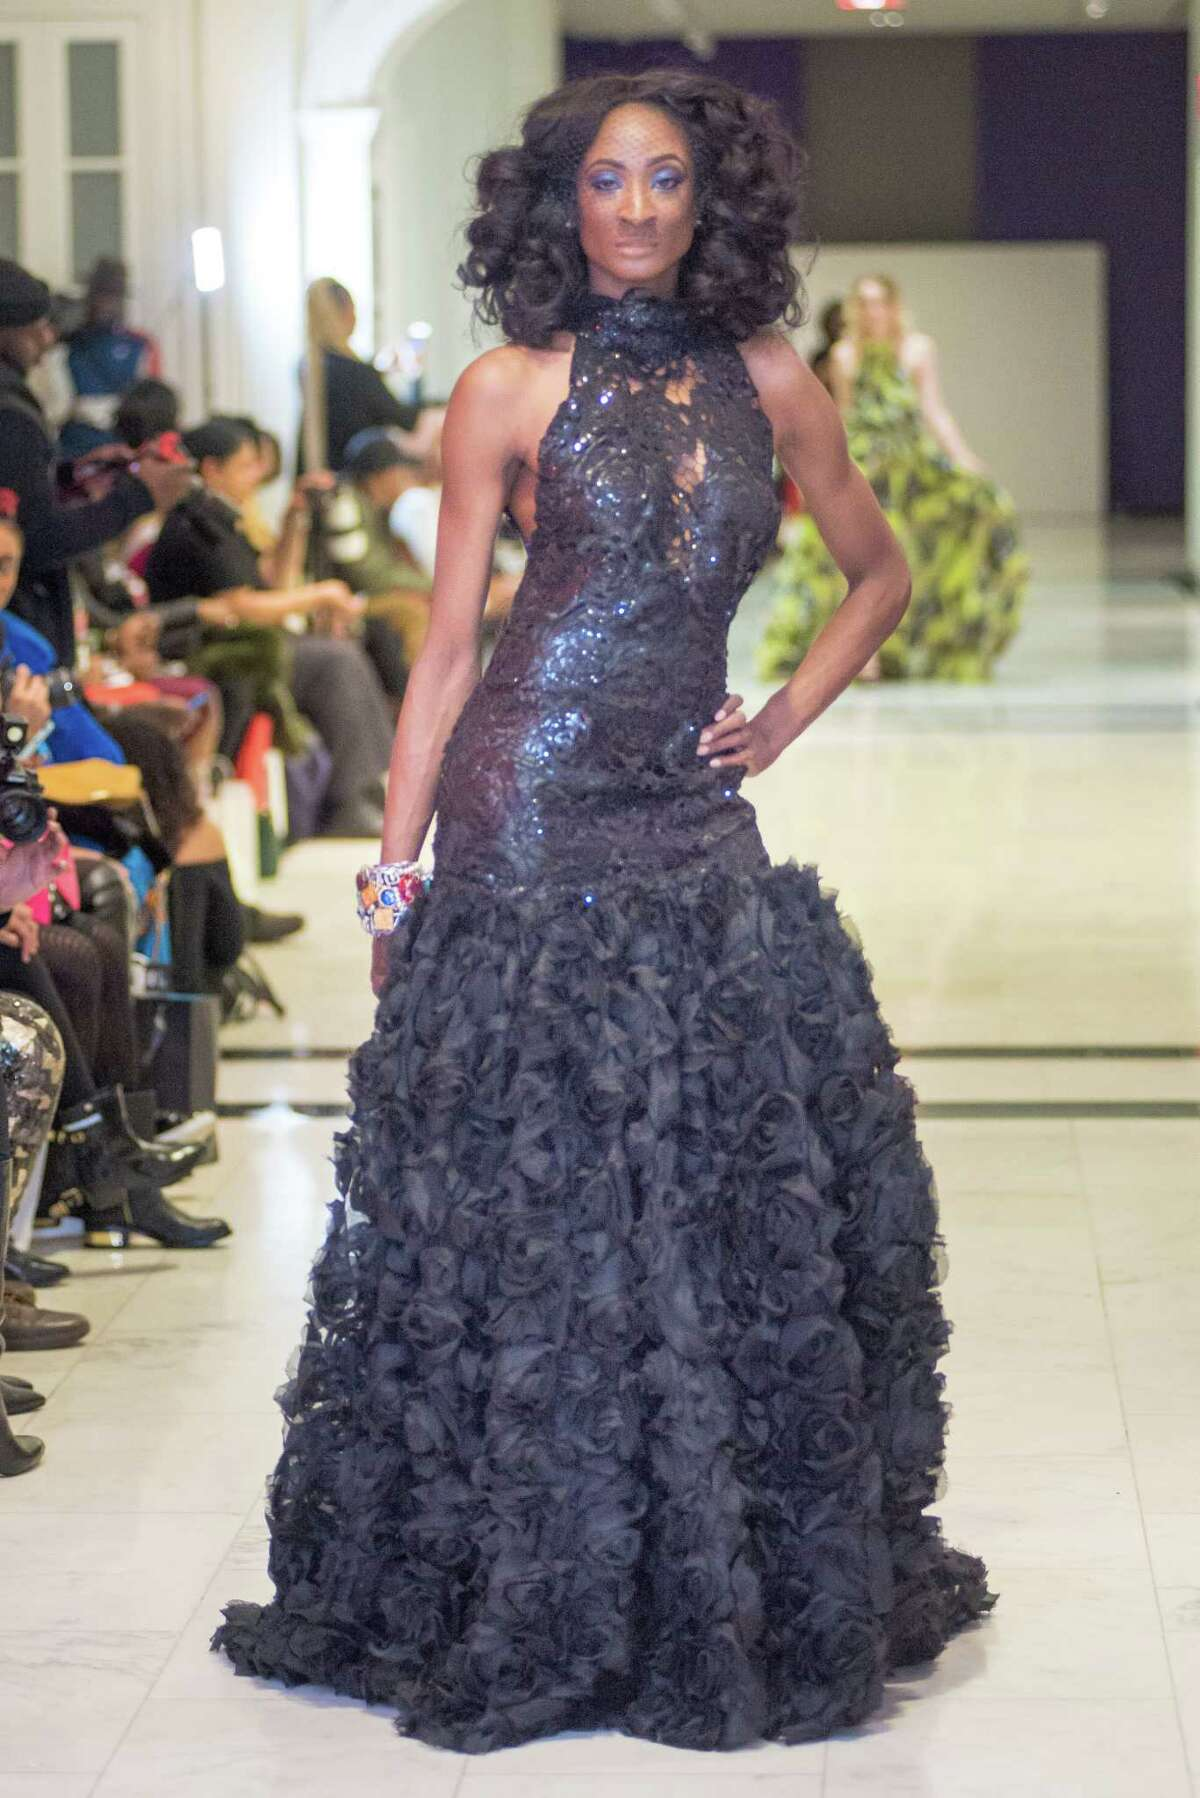 Clothing from Albany-based designer Daniel Mozzes, owner of Daniel Mozzes Design, was shown during Harlem Fashion Week in February. The show sets out to showcase emerging designers. (Thom Williams, TM Williams Photography)